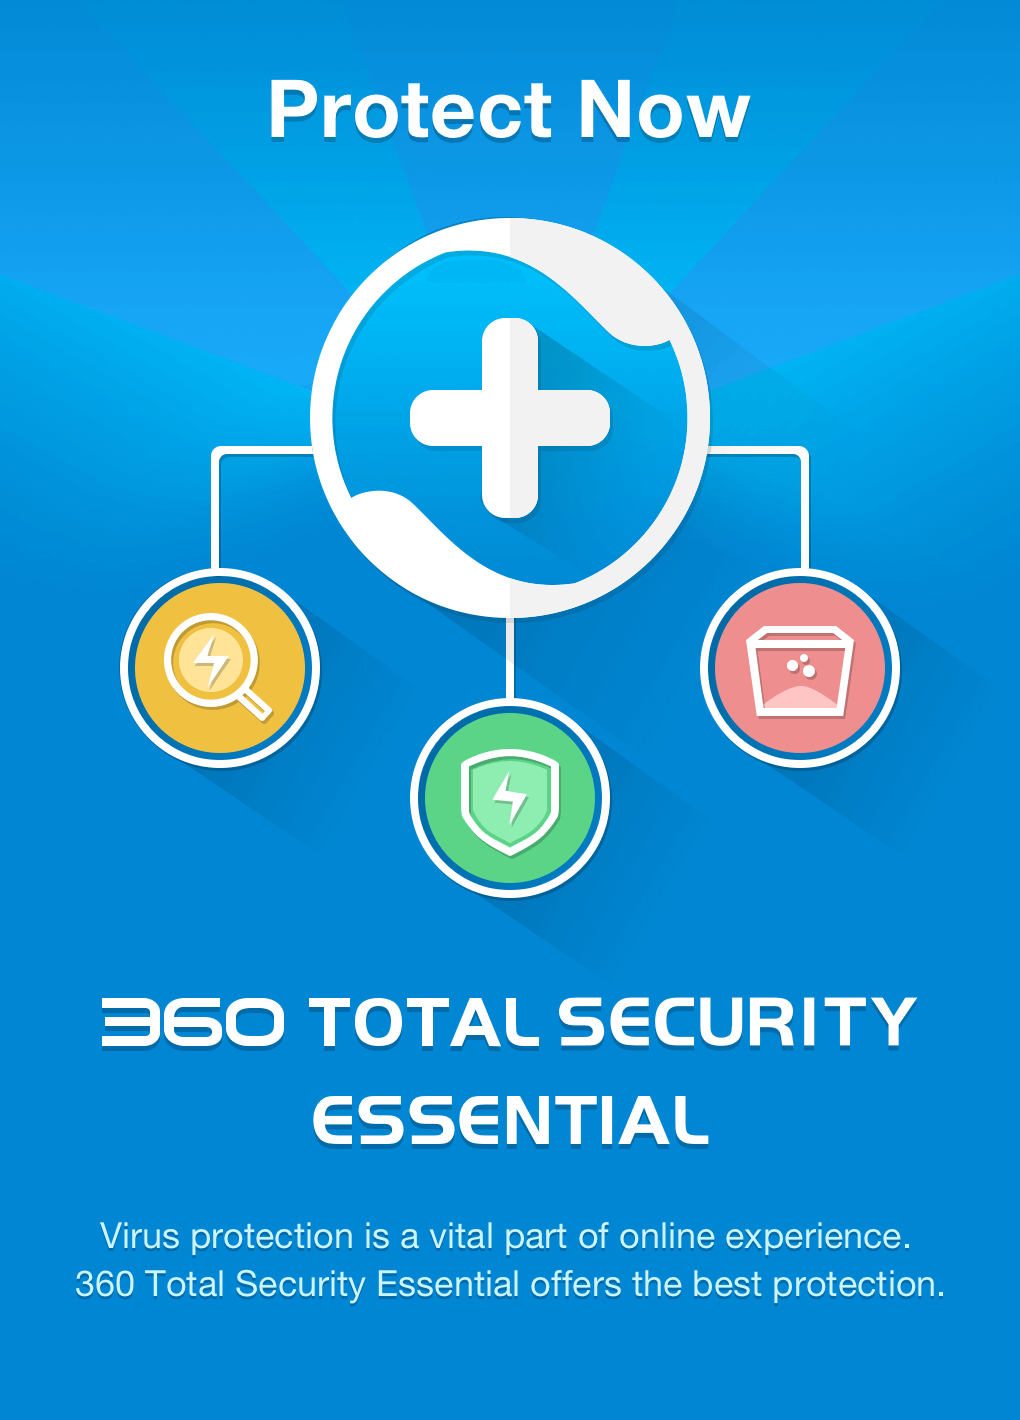 Free PC Protection \u0026 Internet Security Software | 360 Total Security